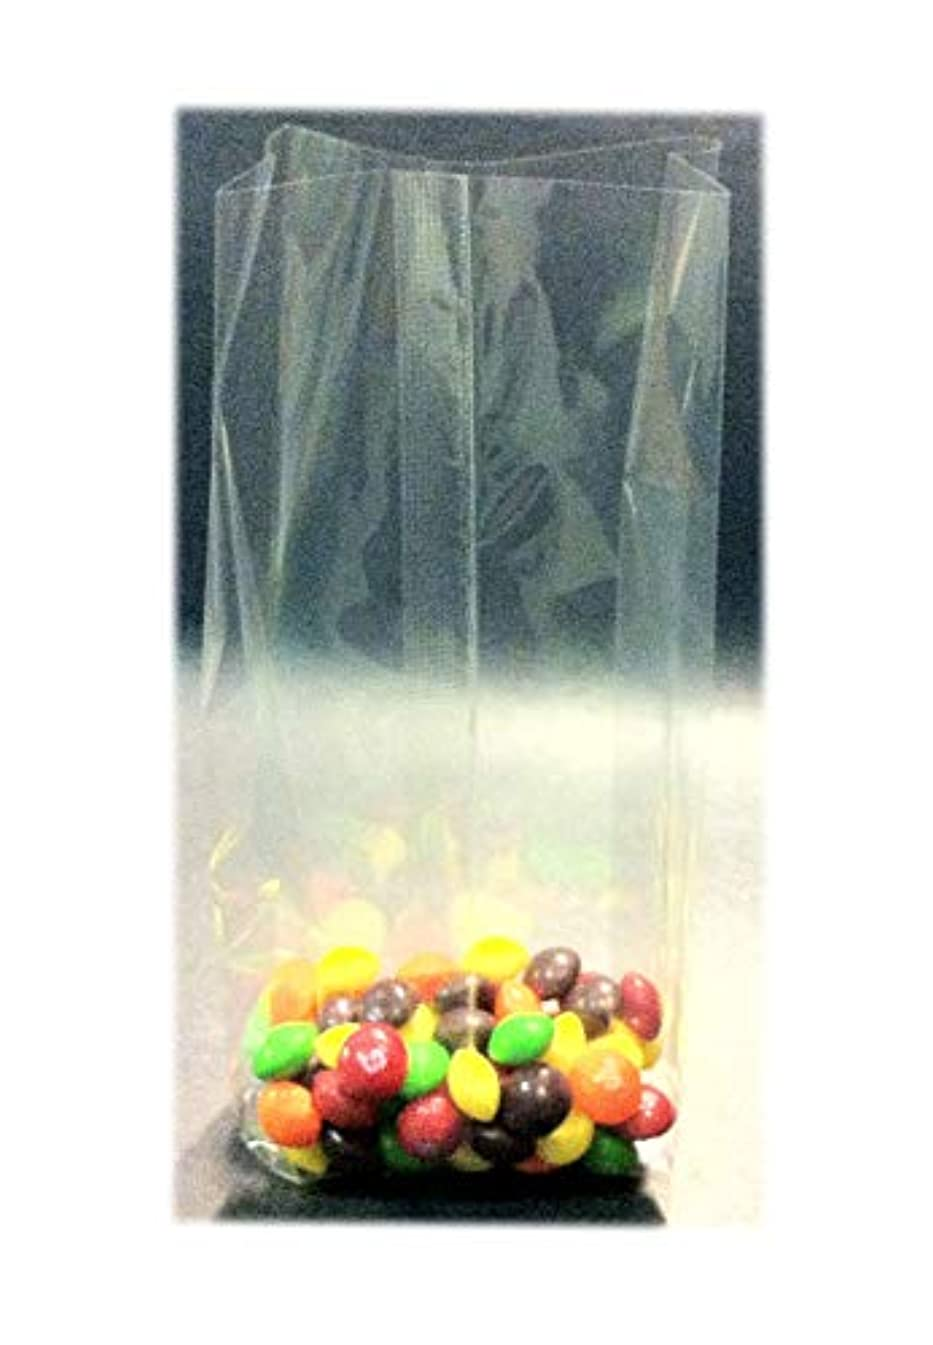 100 Pcs 4x2x10 Clear Side Gusseted Cello Cellophane Bags Good for Candy Cookie Bakery (by UNIQUEPACKING)